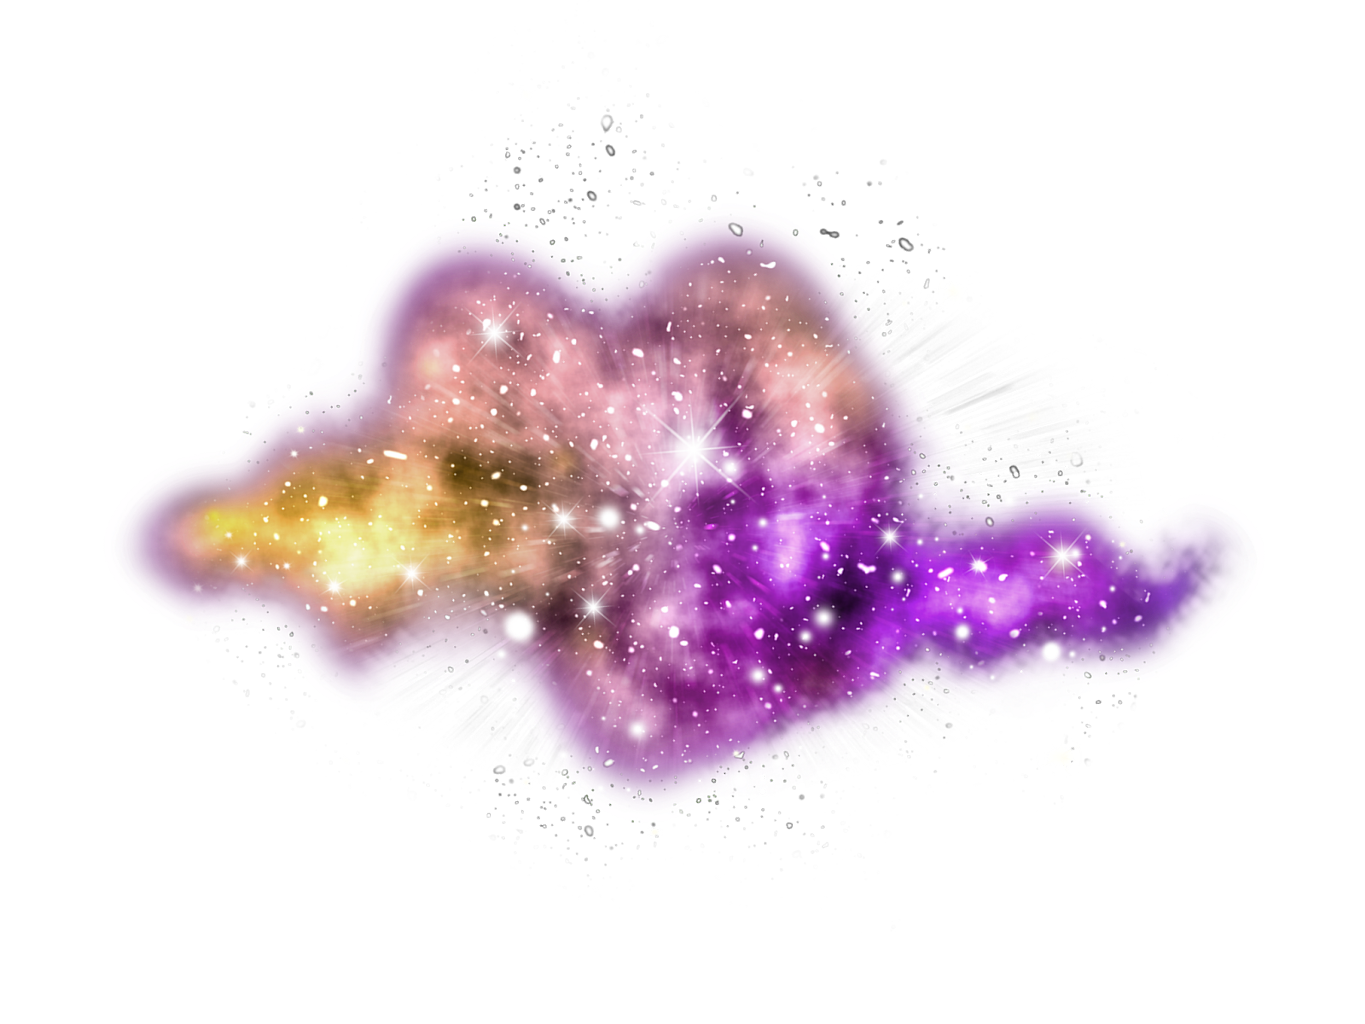 Night clipart galaxy. Freetoedit png stars with